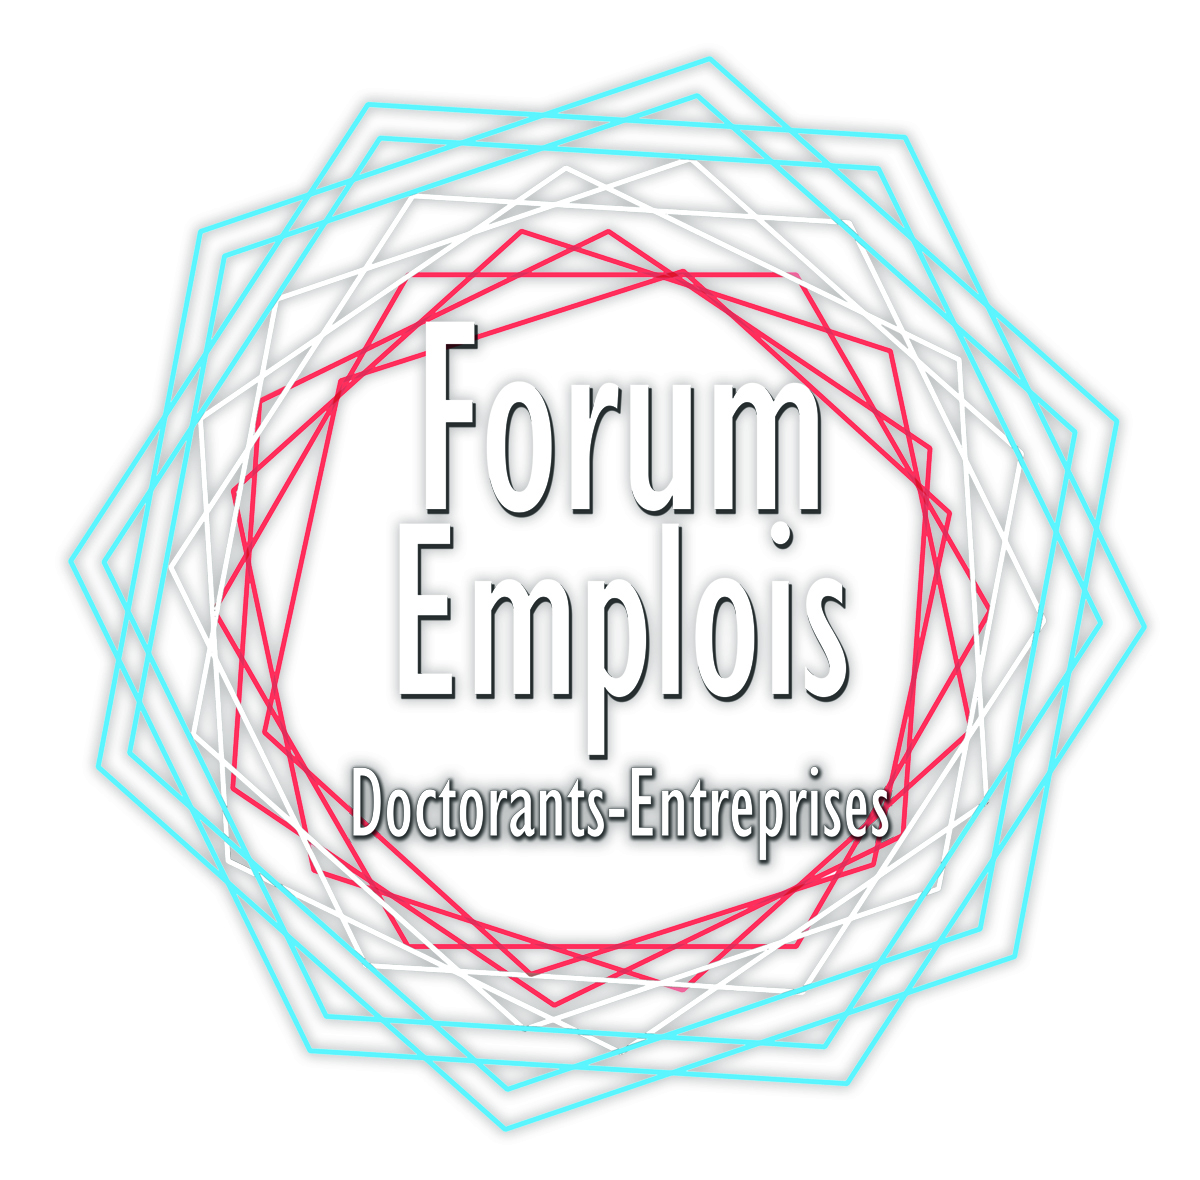 Forum Doctorants Entreprises 2015